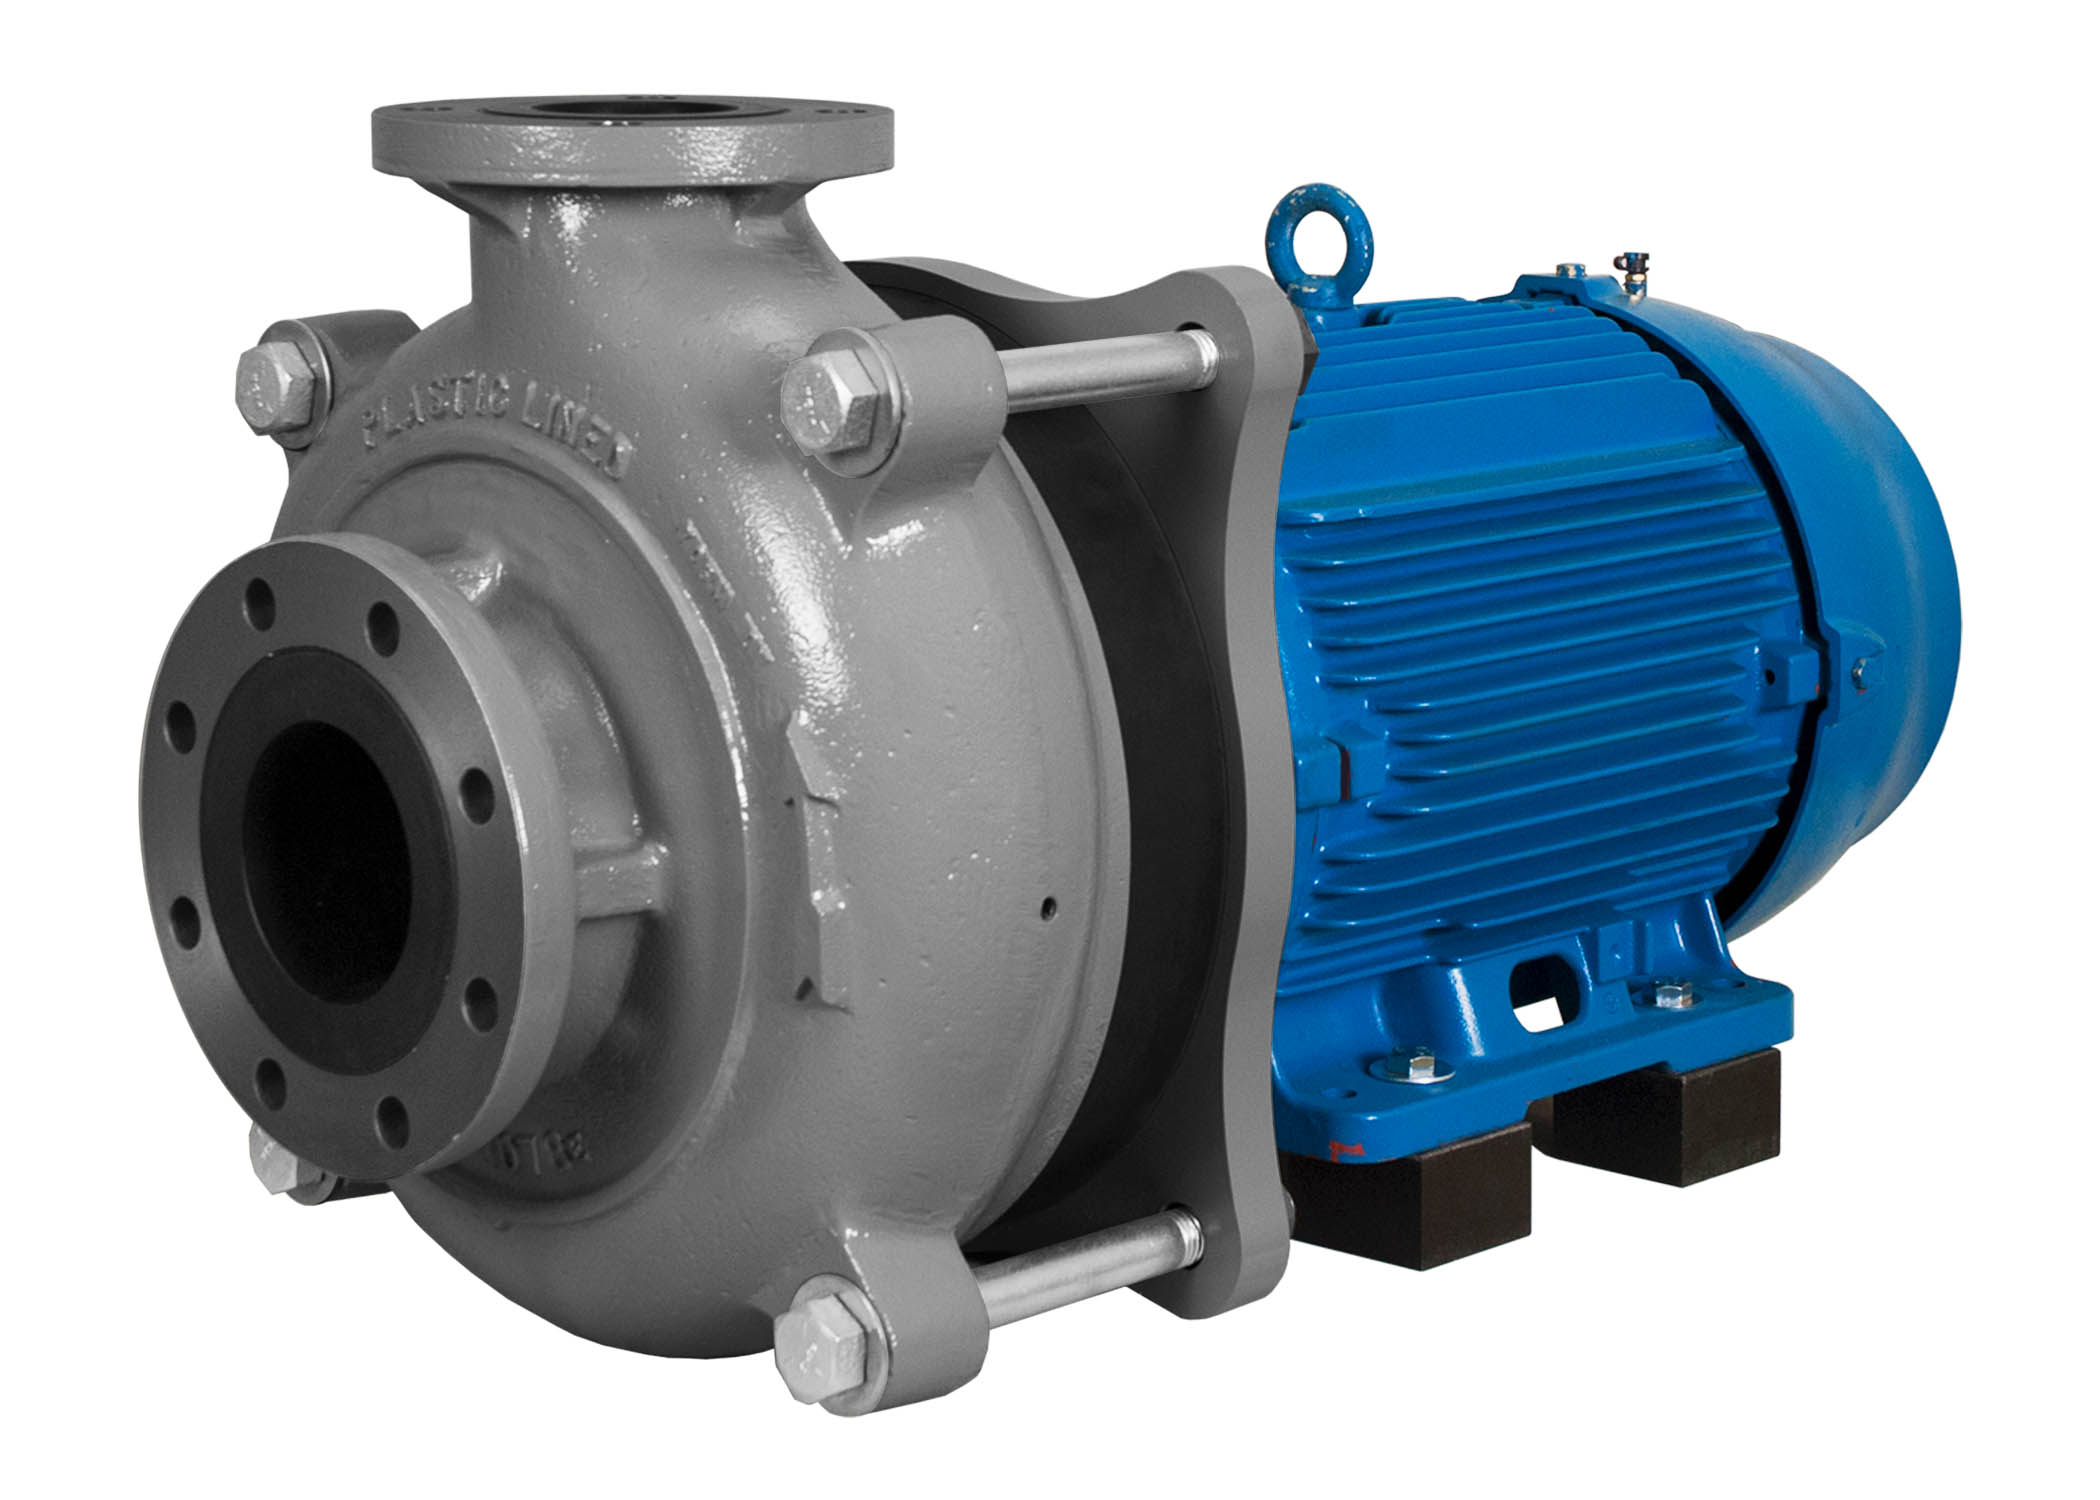 C-Shell 4x3-10 Pump with blue WEG Motor right angle view